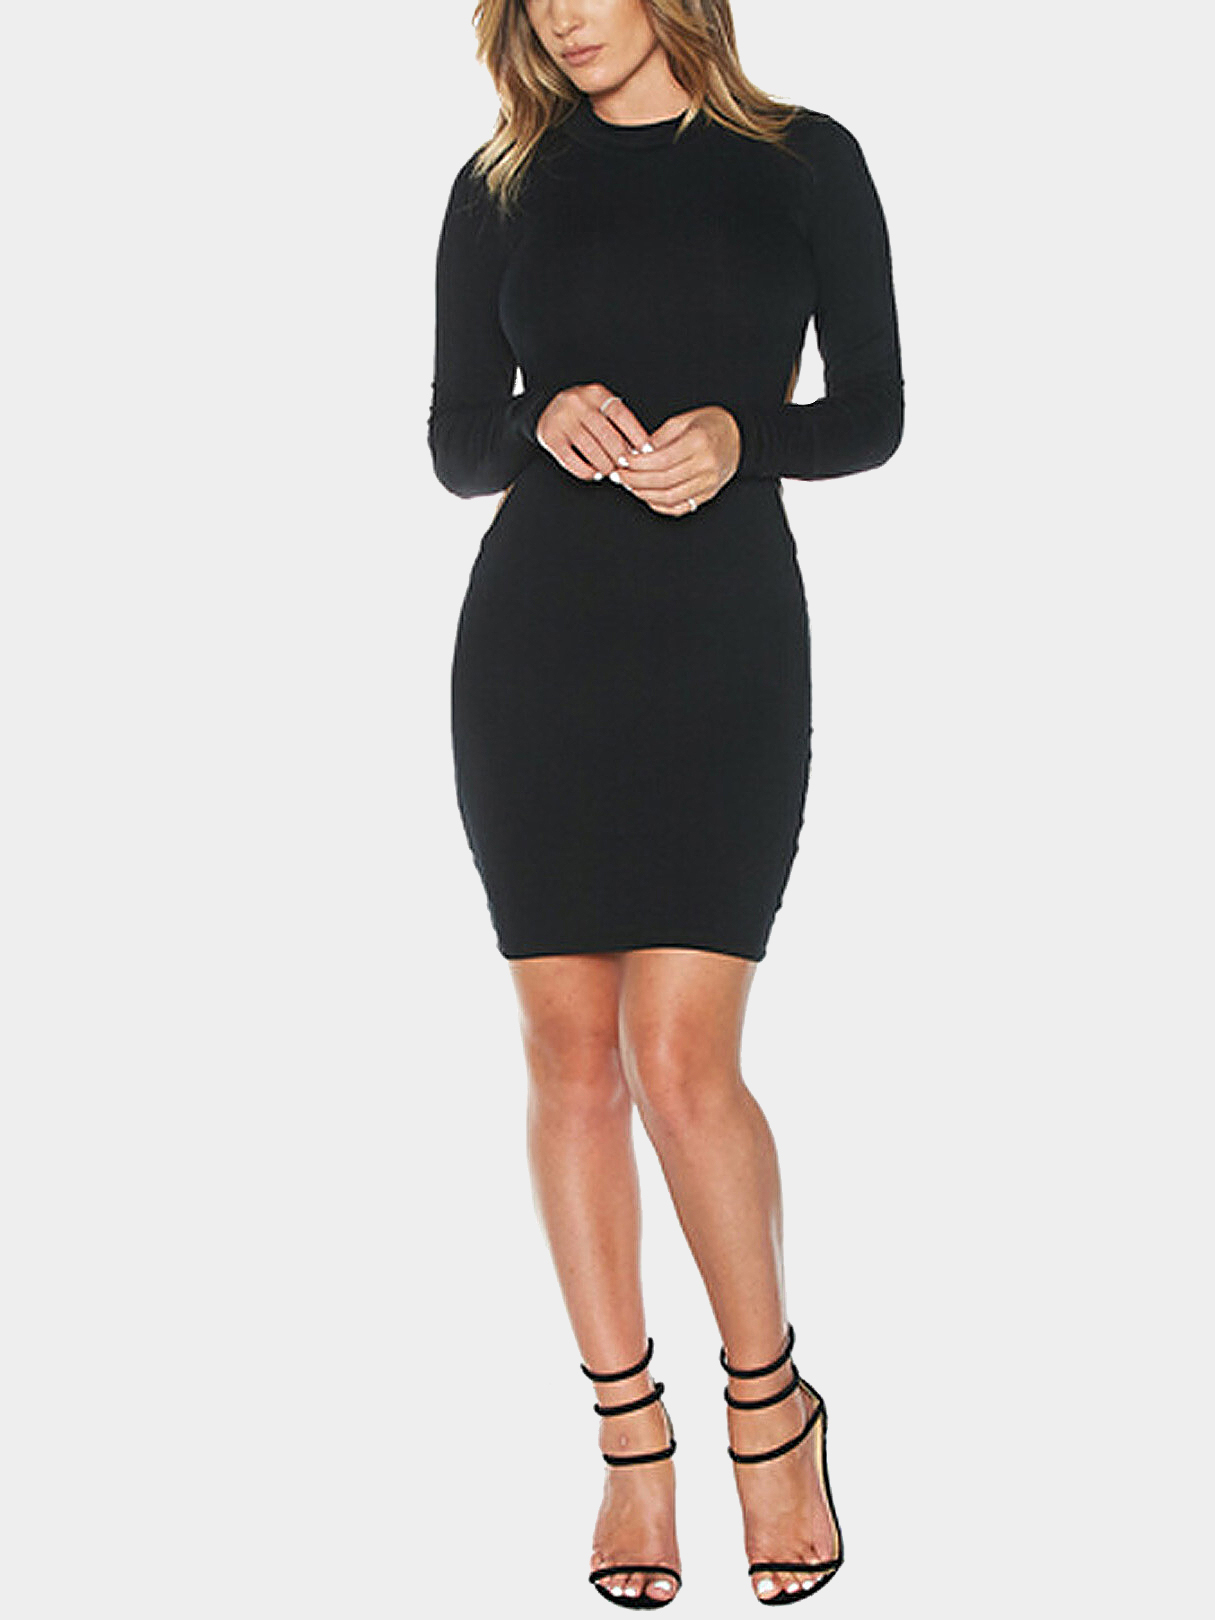 Black Backless Midi Dress with Long Sleeves